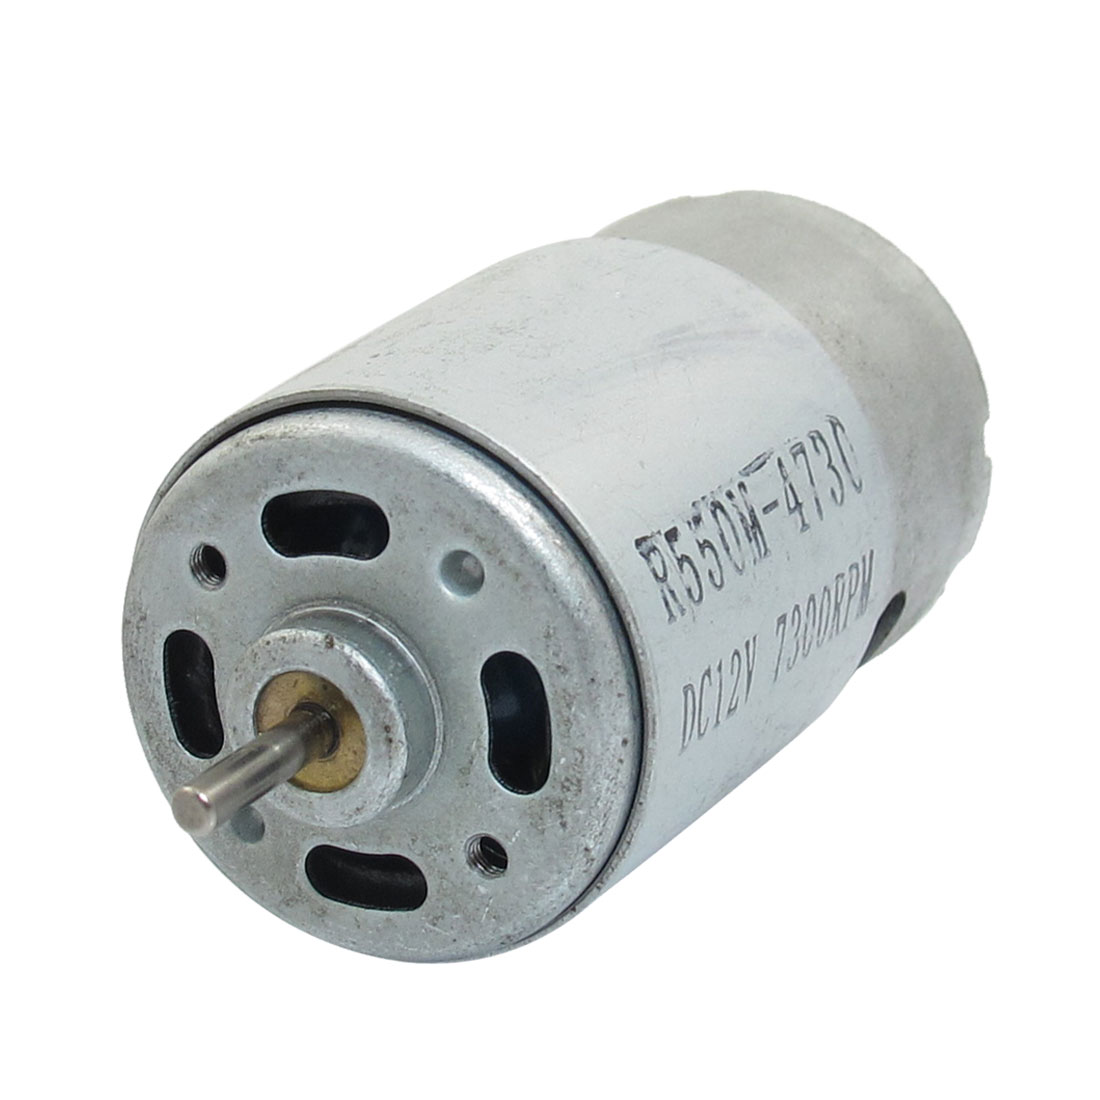 7300 RPM 12V High Torque Magnetic Cylinder Electric DC Motor